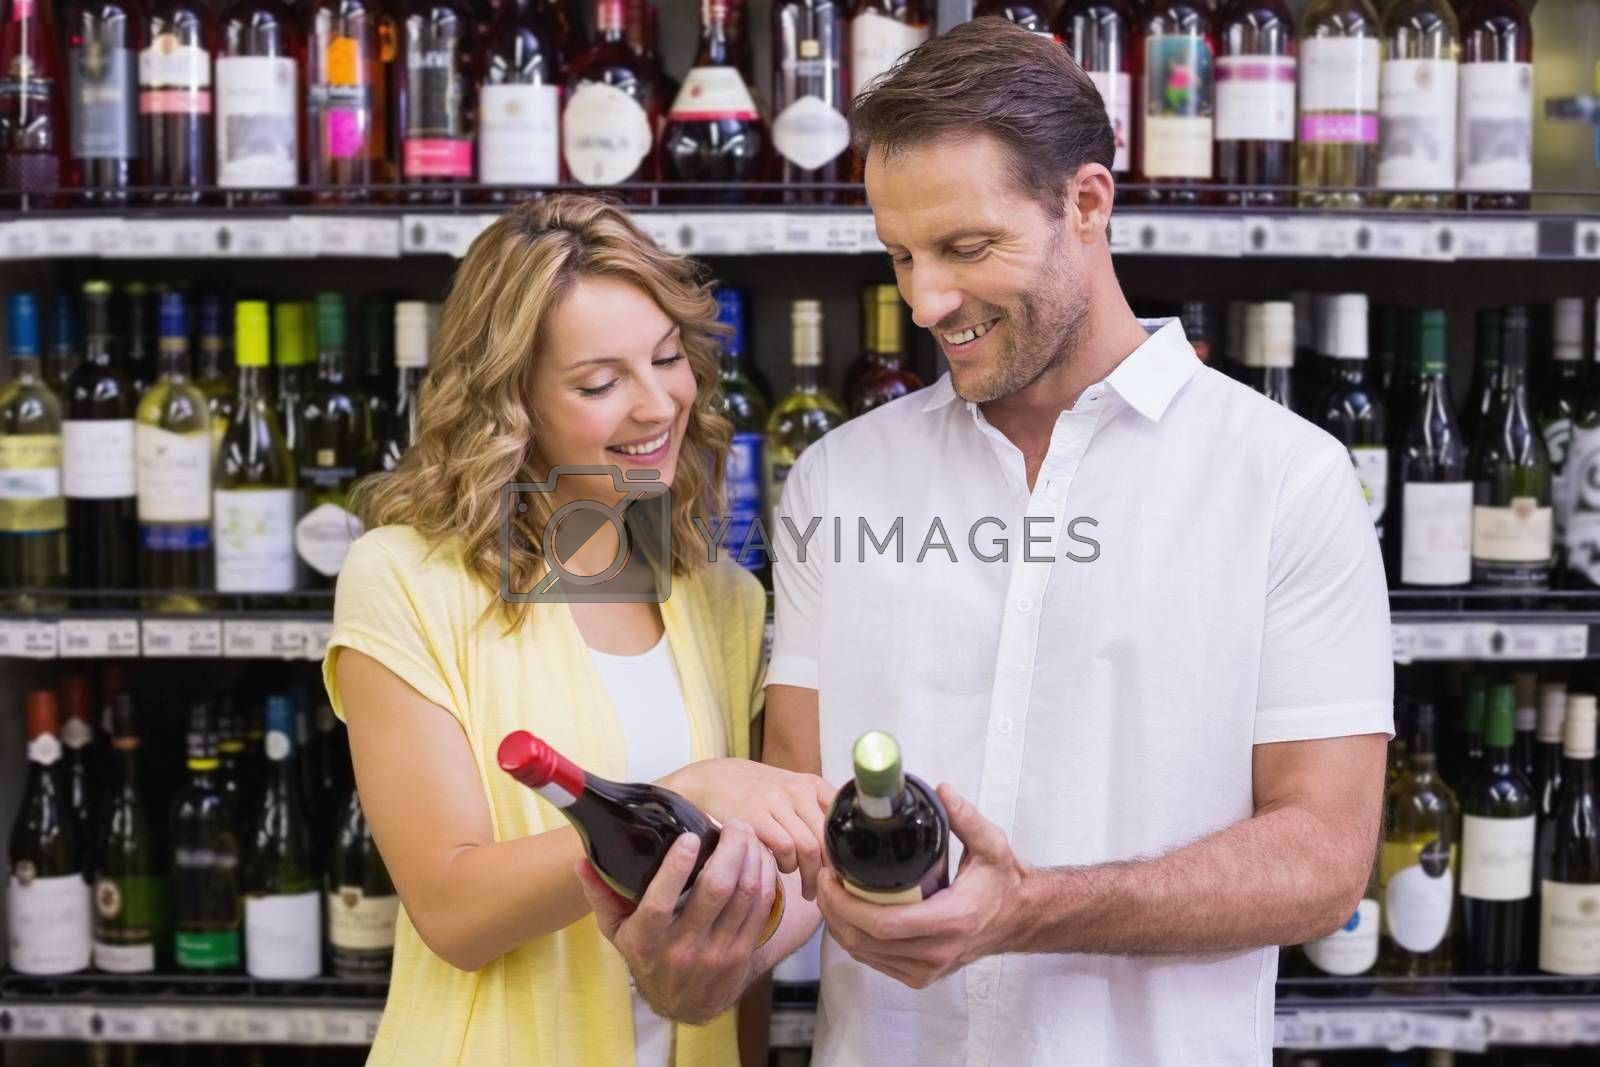 Royalty free image of Smiling casual couple looking at wine bottle  by Wavebreakmedia